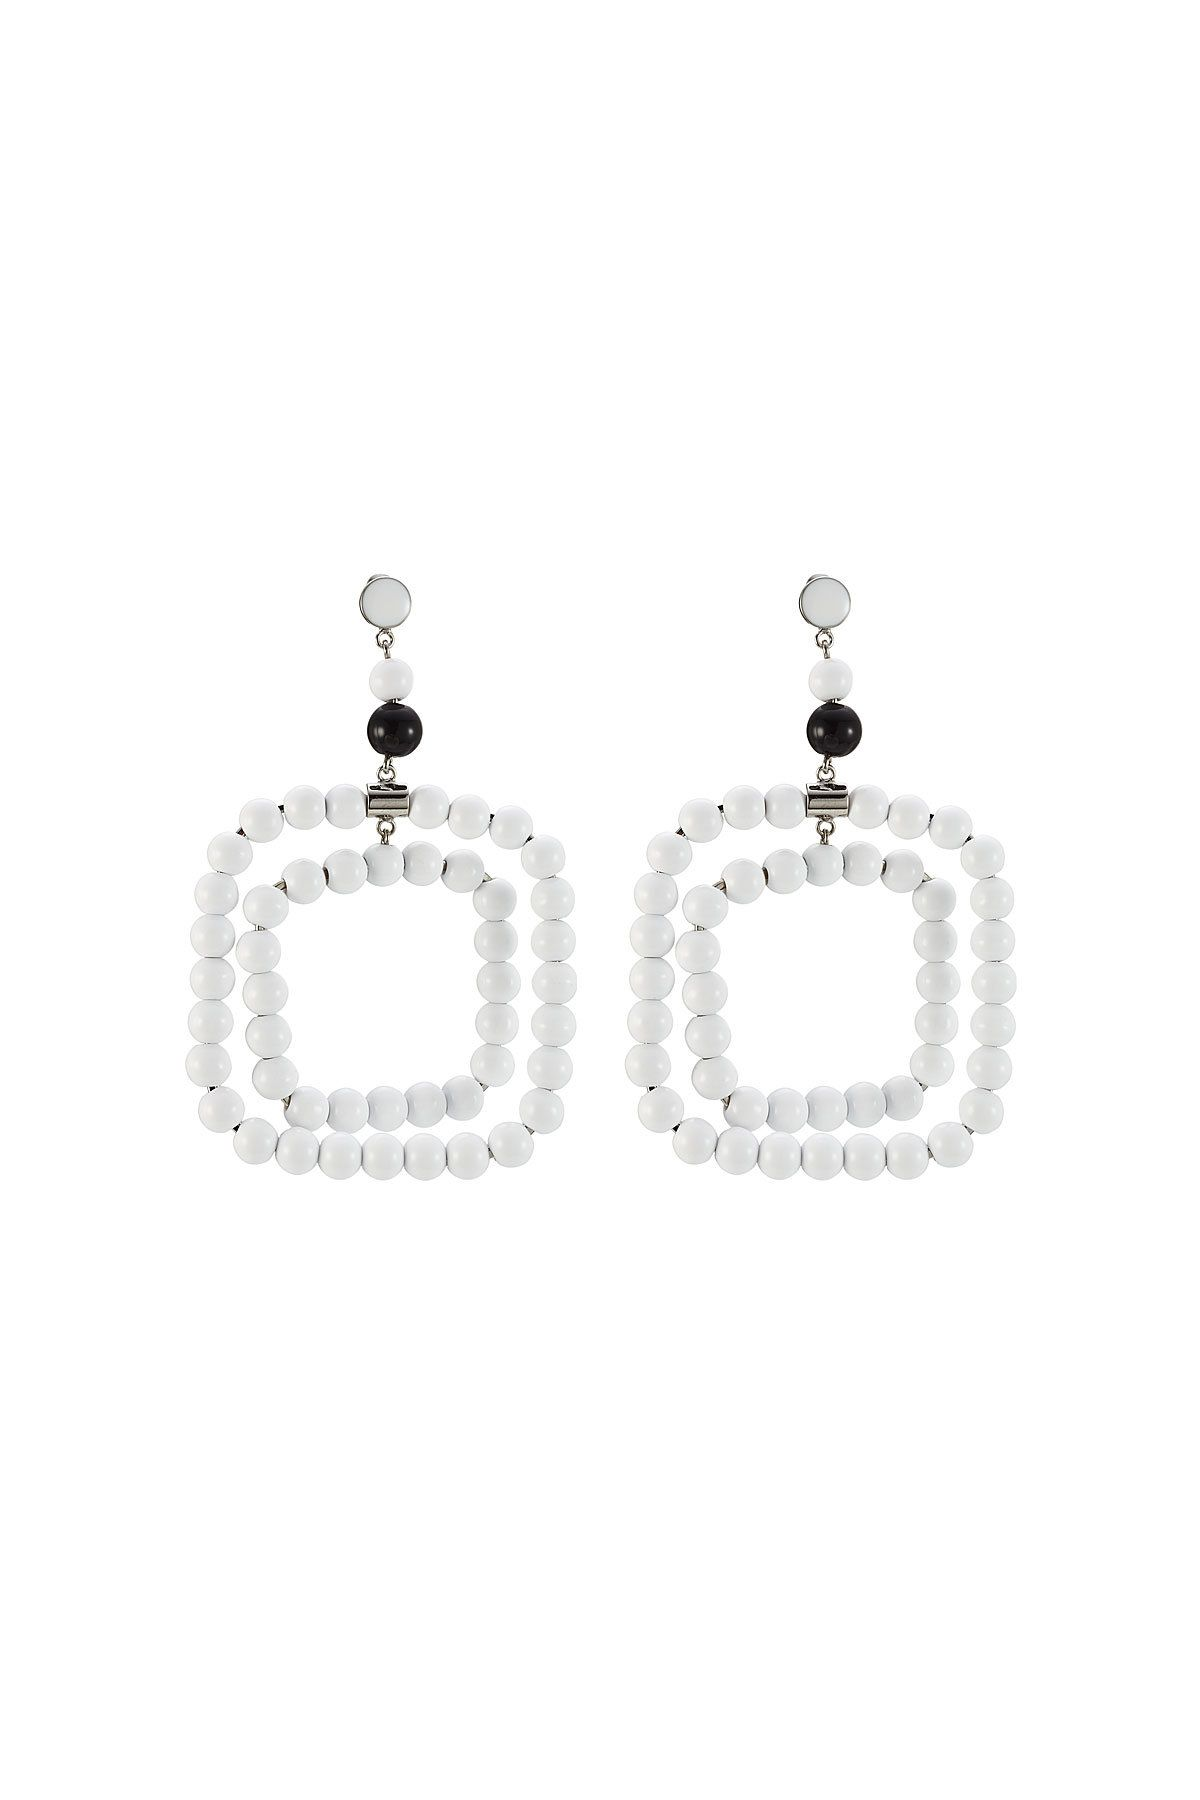 pin earrings picture beaded in of white drops pearl fringe with